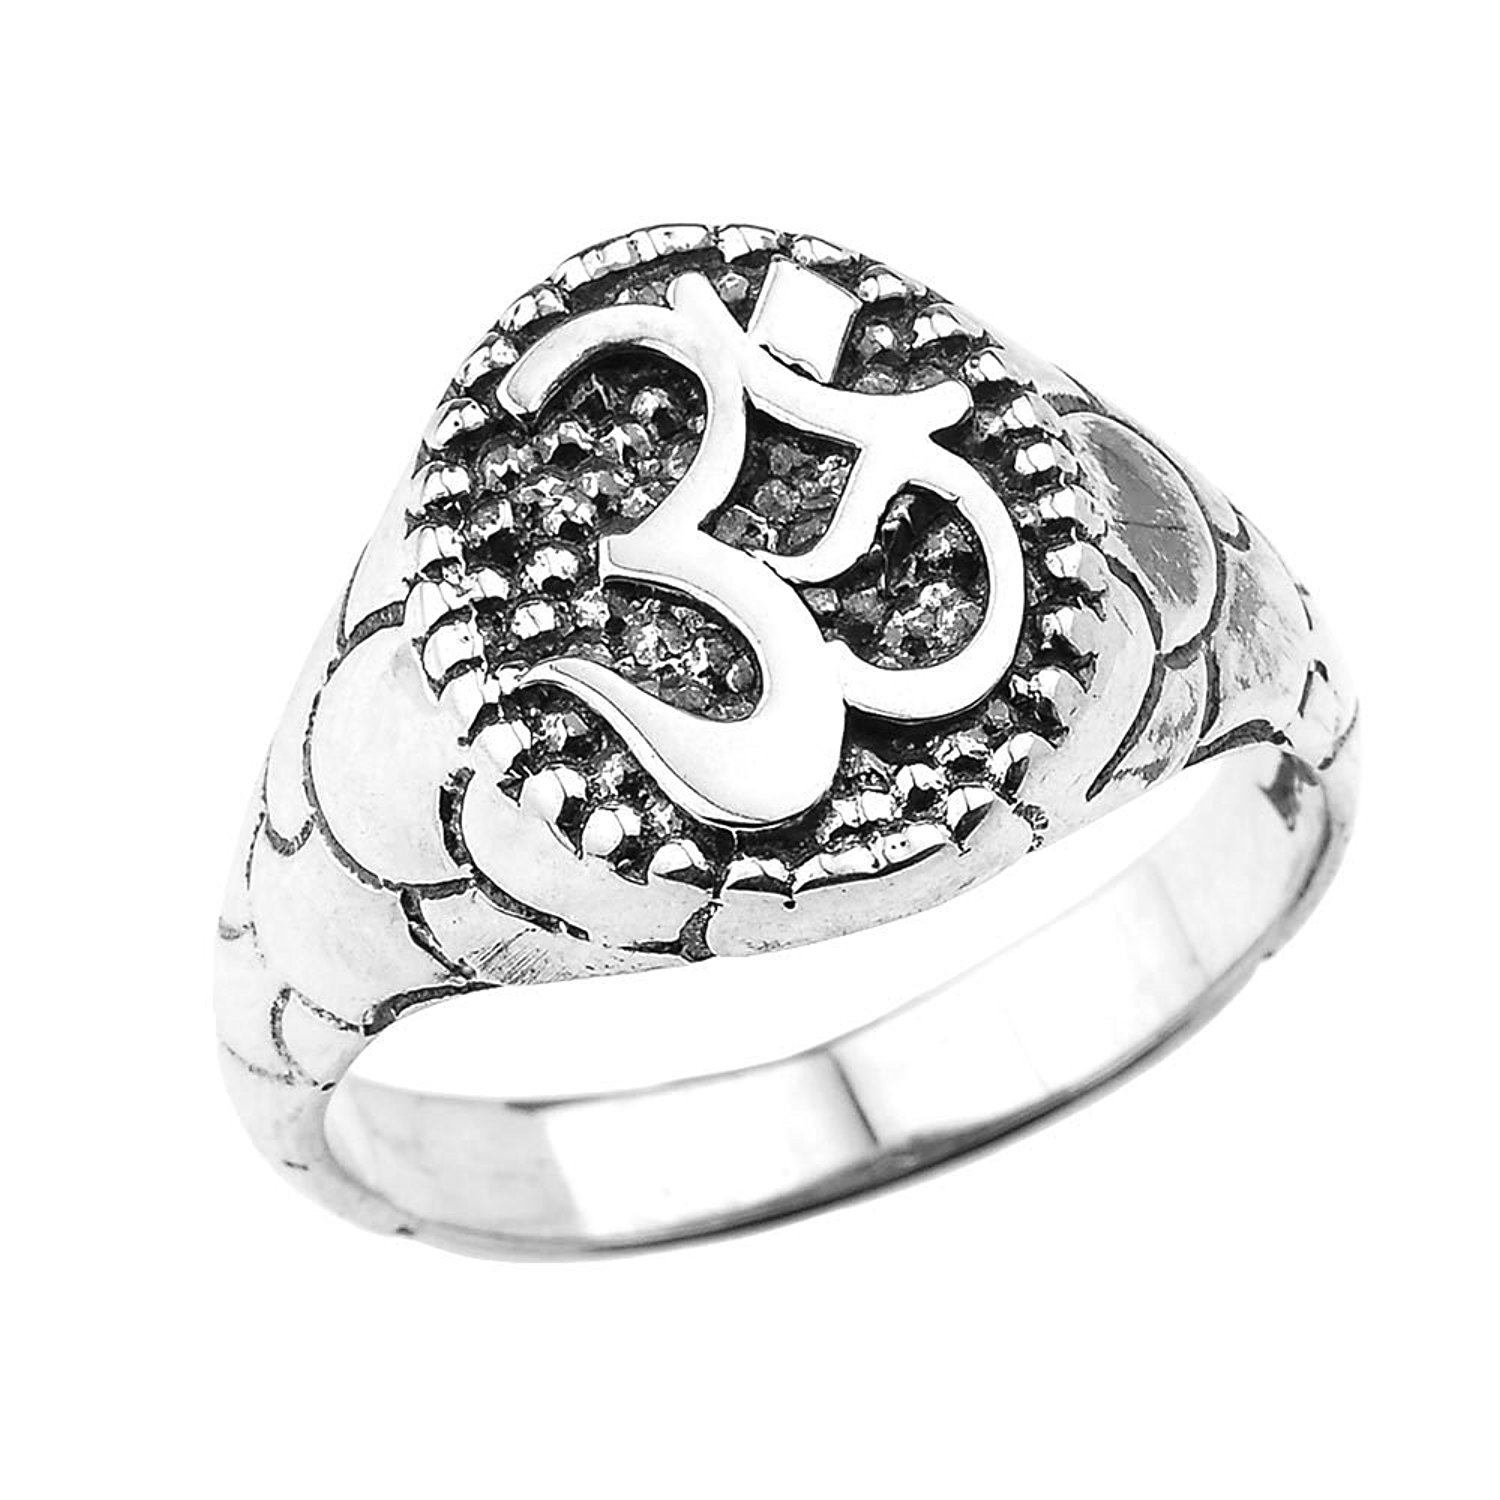 Men's 925 Sterling Silver Hindu Textured Band Oval Om/Ohm Ring